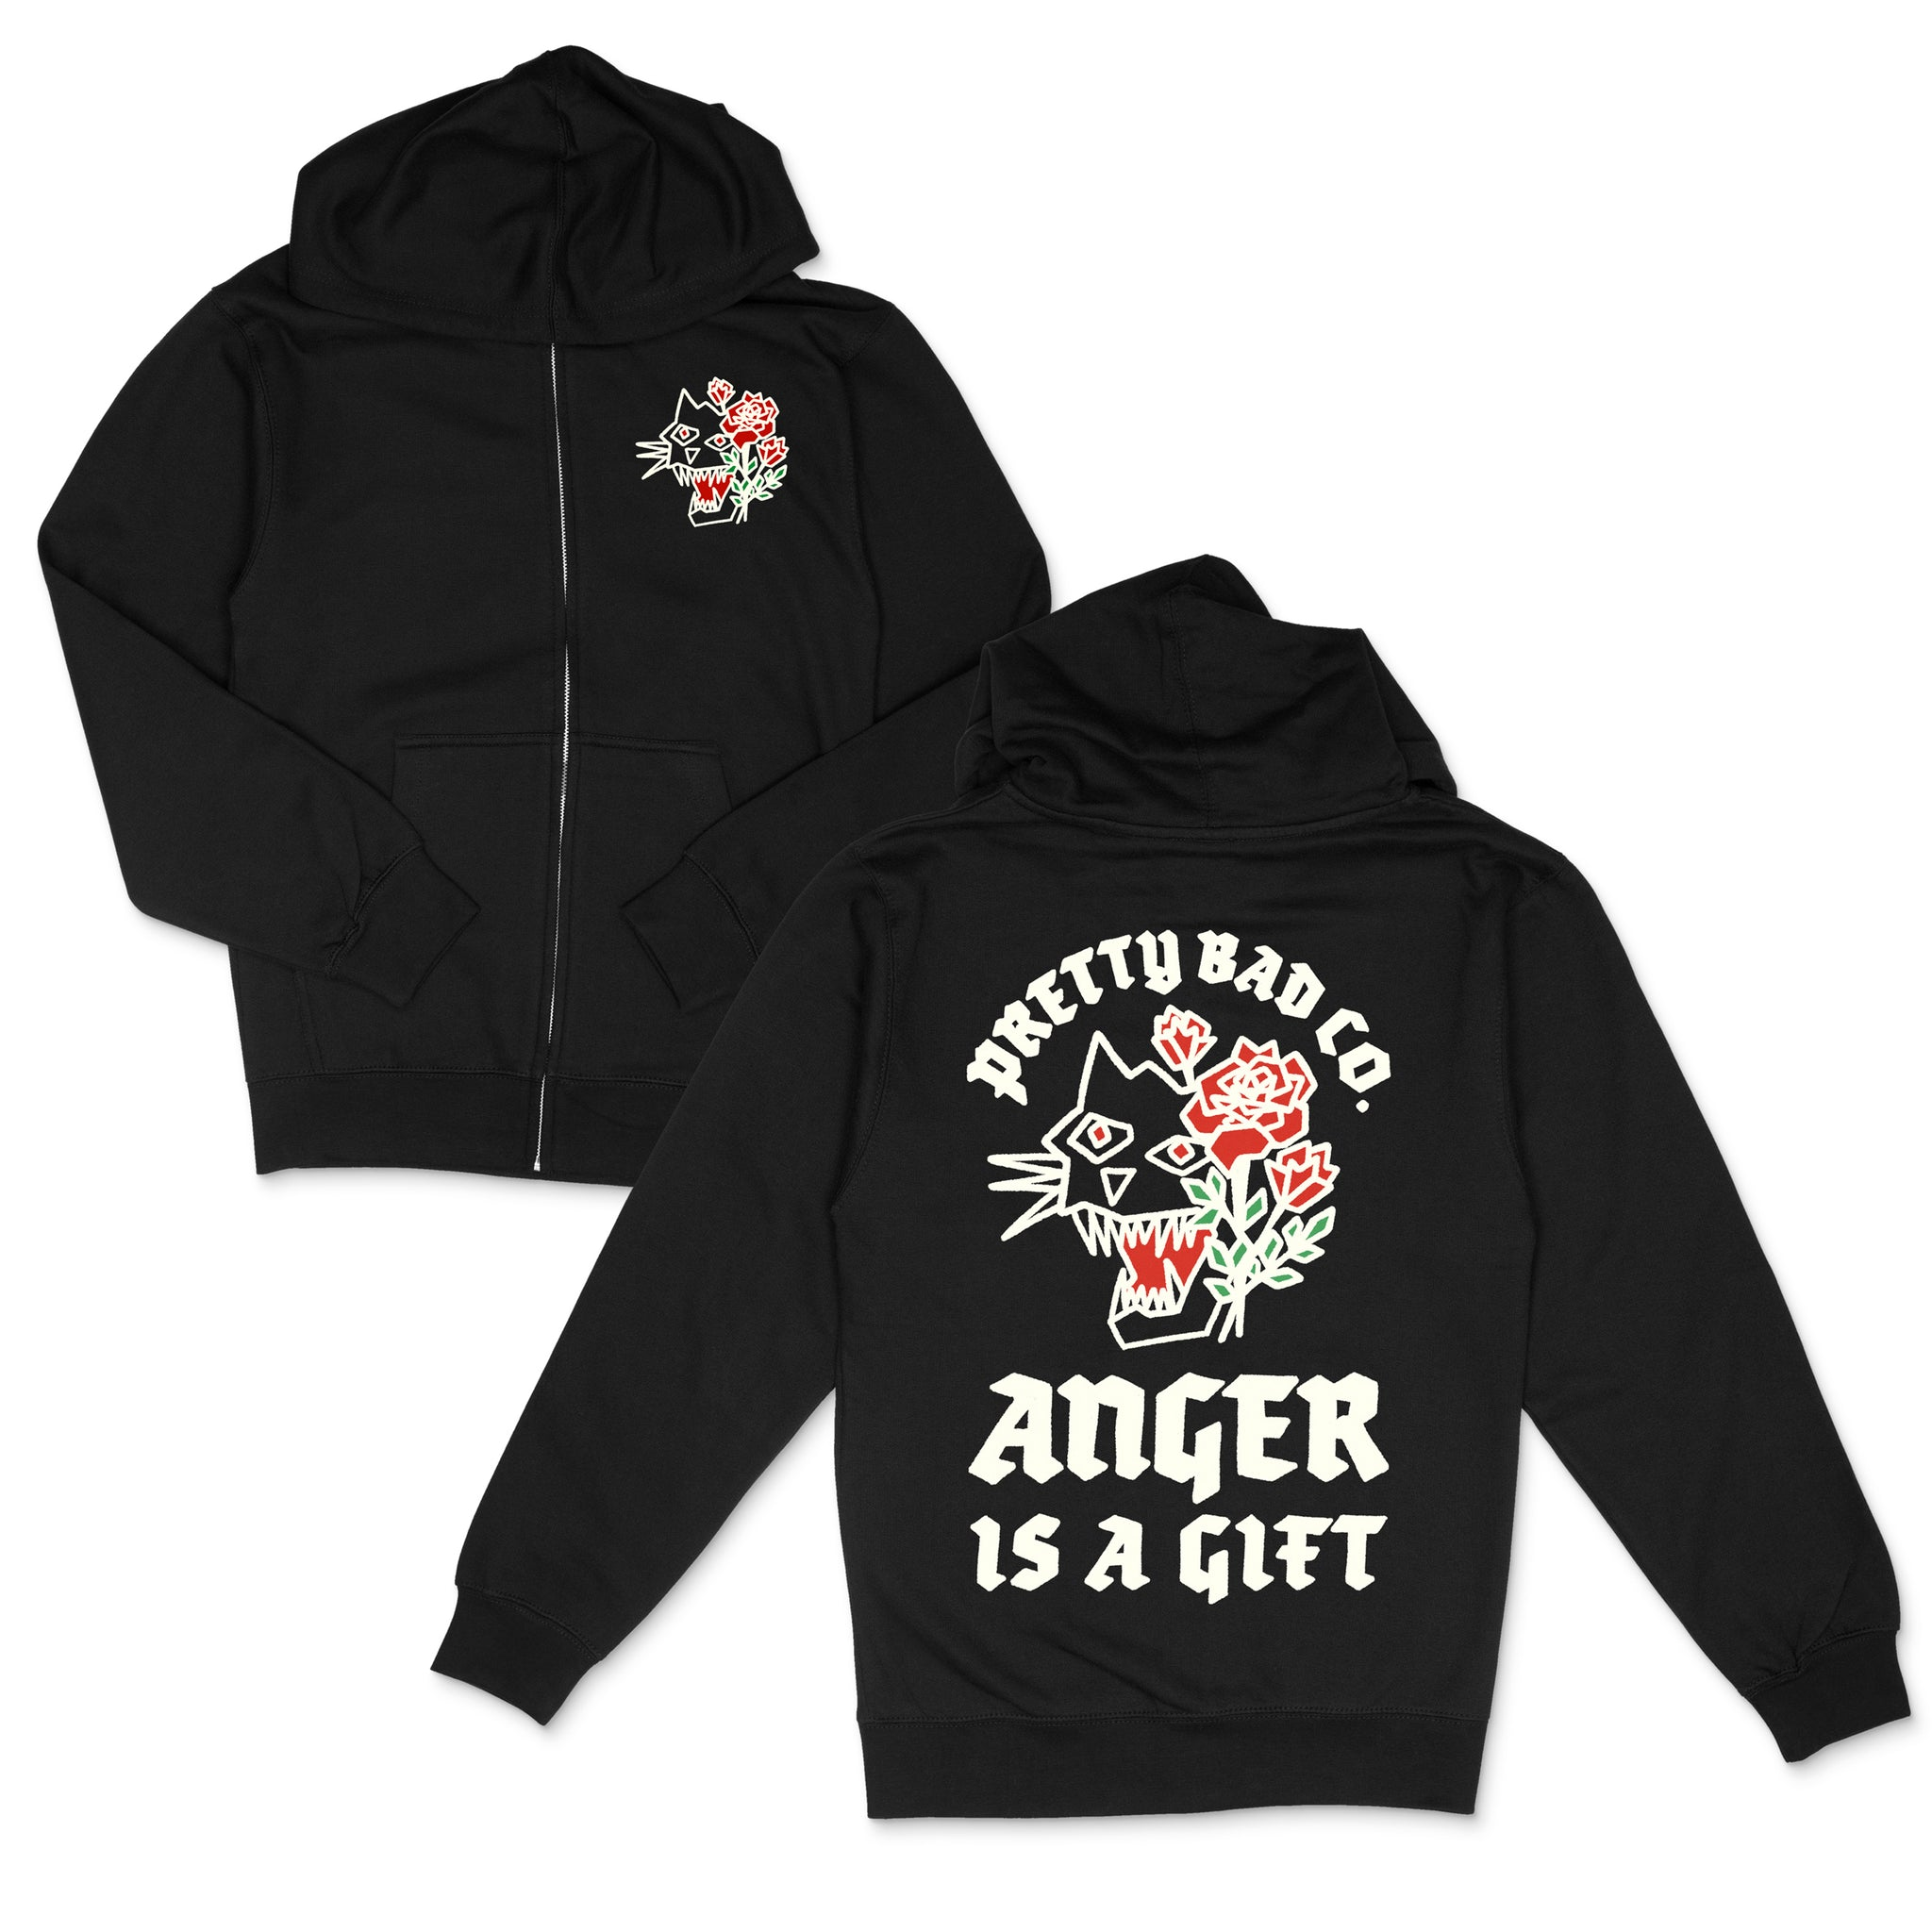 Anger Is A Gift Zip Up Hoody